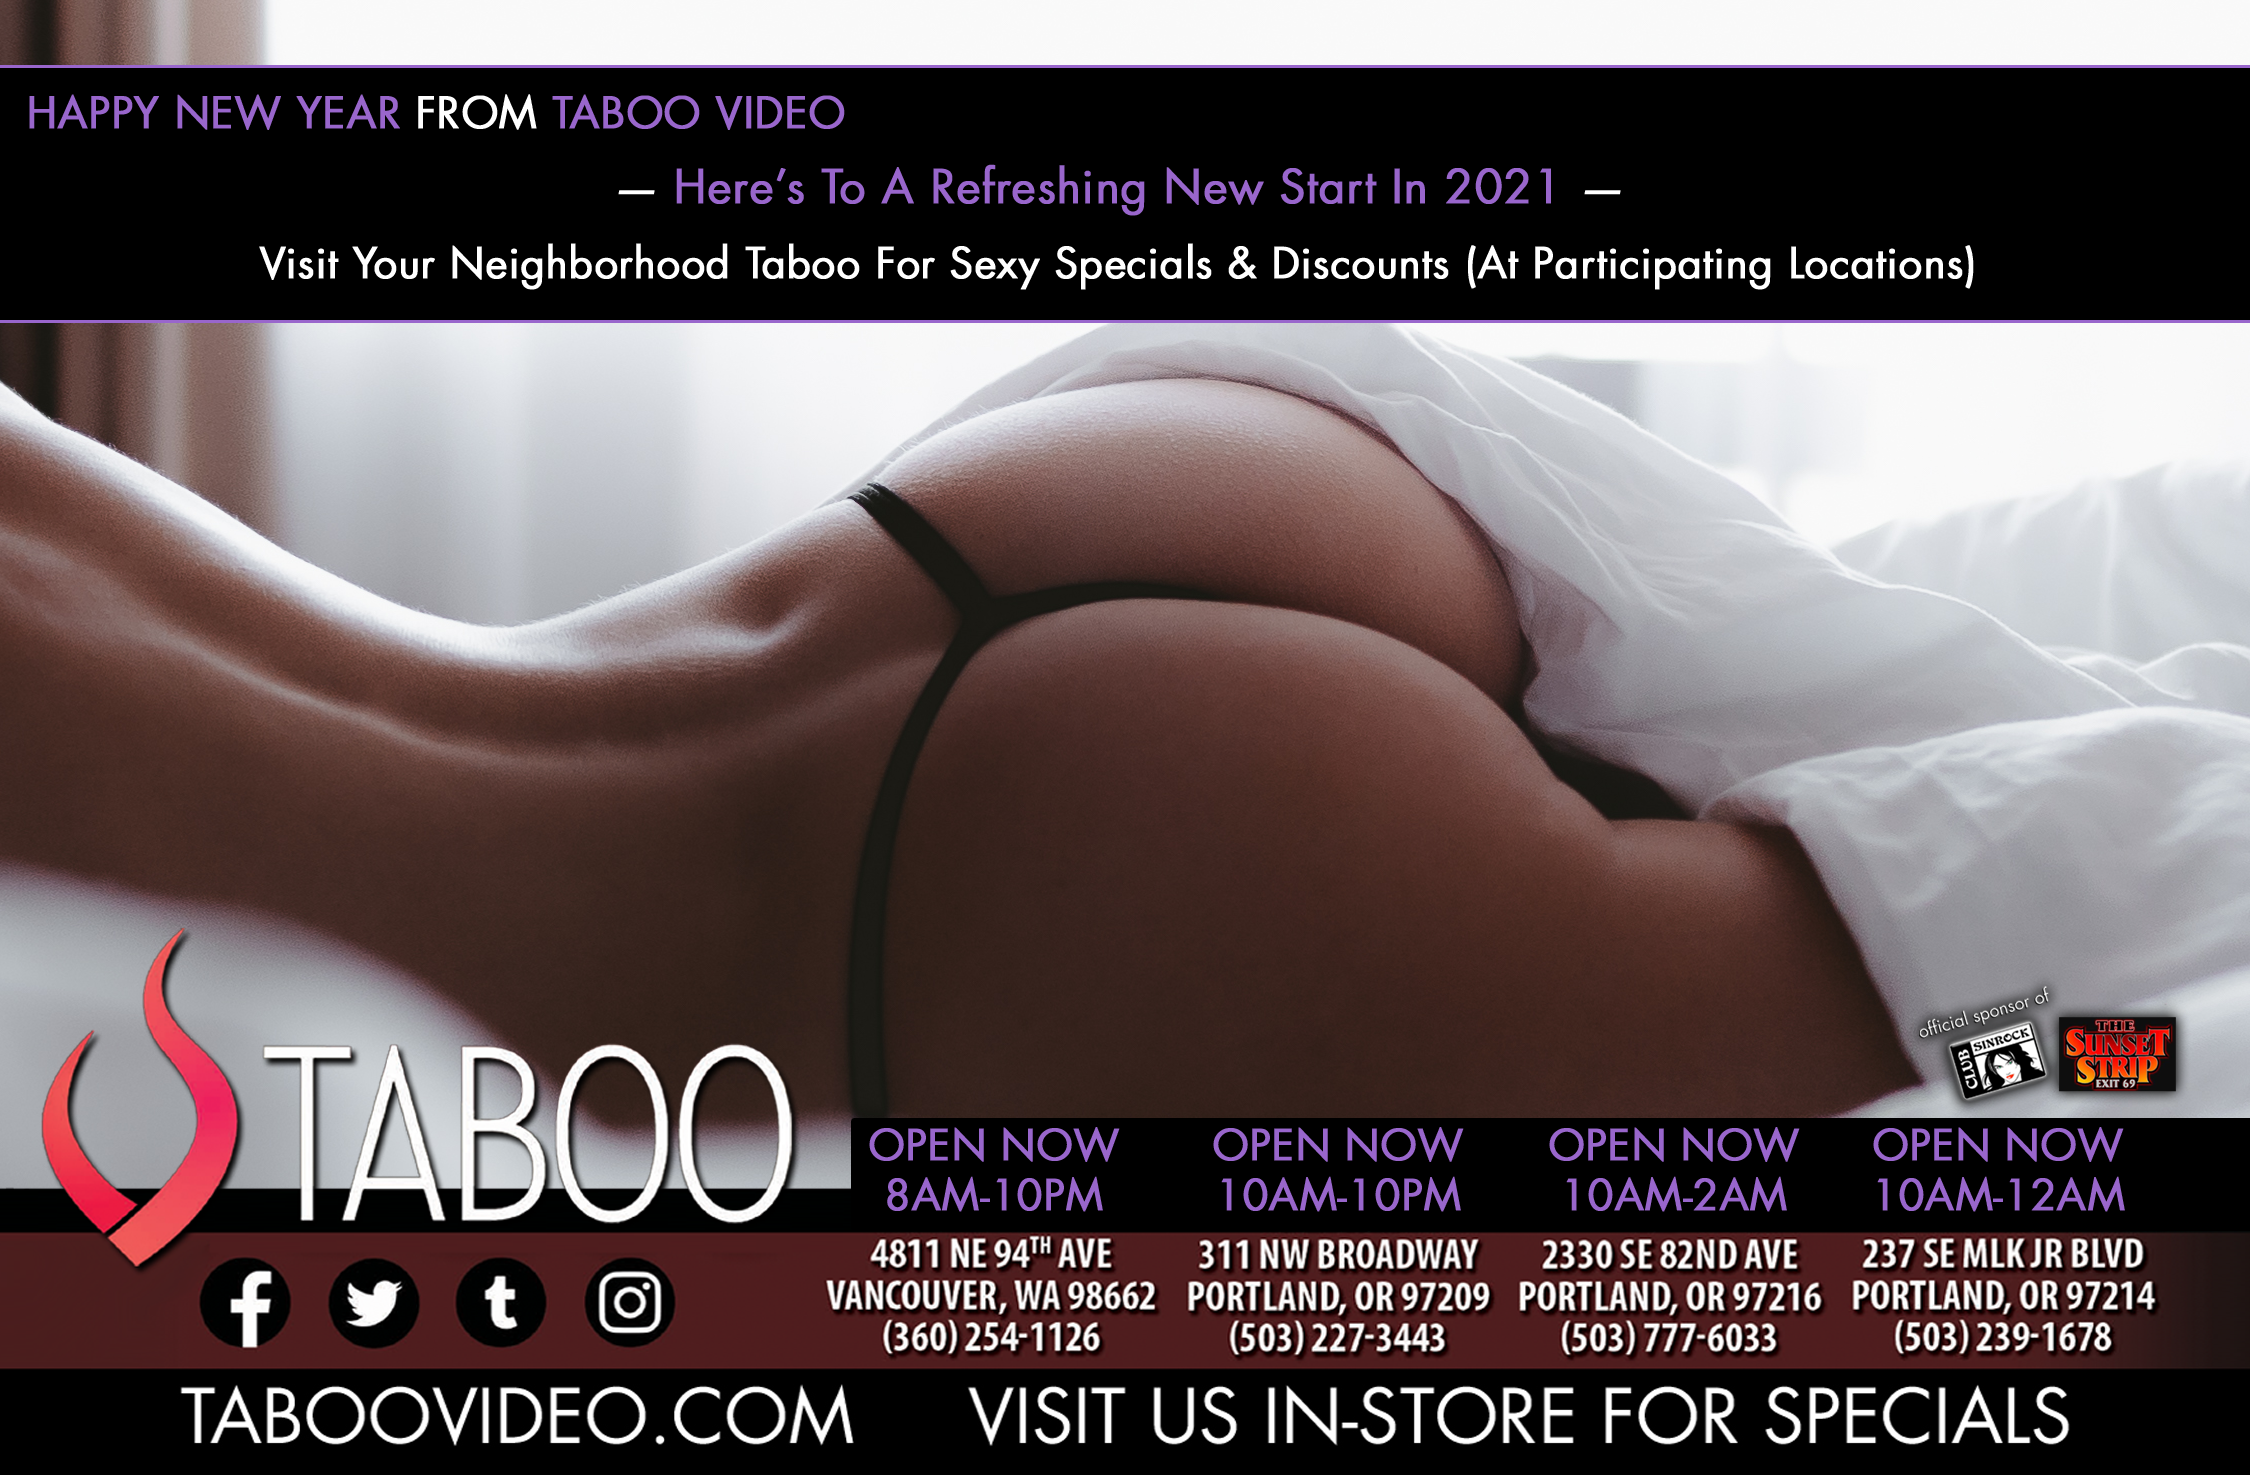 We are proud to announce that, thanks to a strong and proactive community, we are able to open up ALL of our Portland, Seattle and Vancouver-area locations (with safety precautions, of course) for retail sales only. Happy New Year From Taboo Video! Here's To A Refreshing New Start In 2021...Visit Your Neighborhood Taboo For Sexy Specials & Discounts (At Participating Locations).